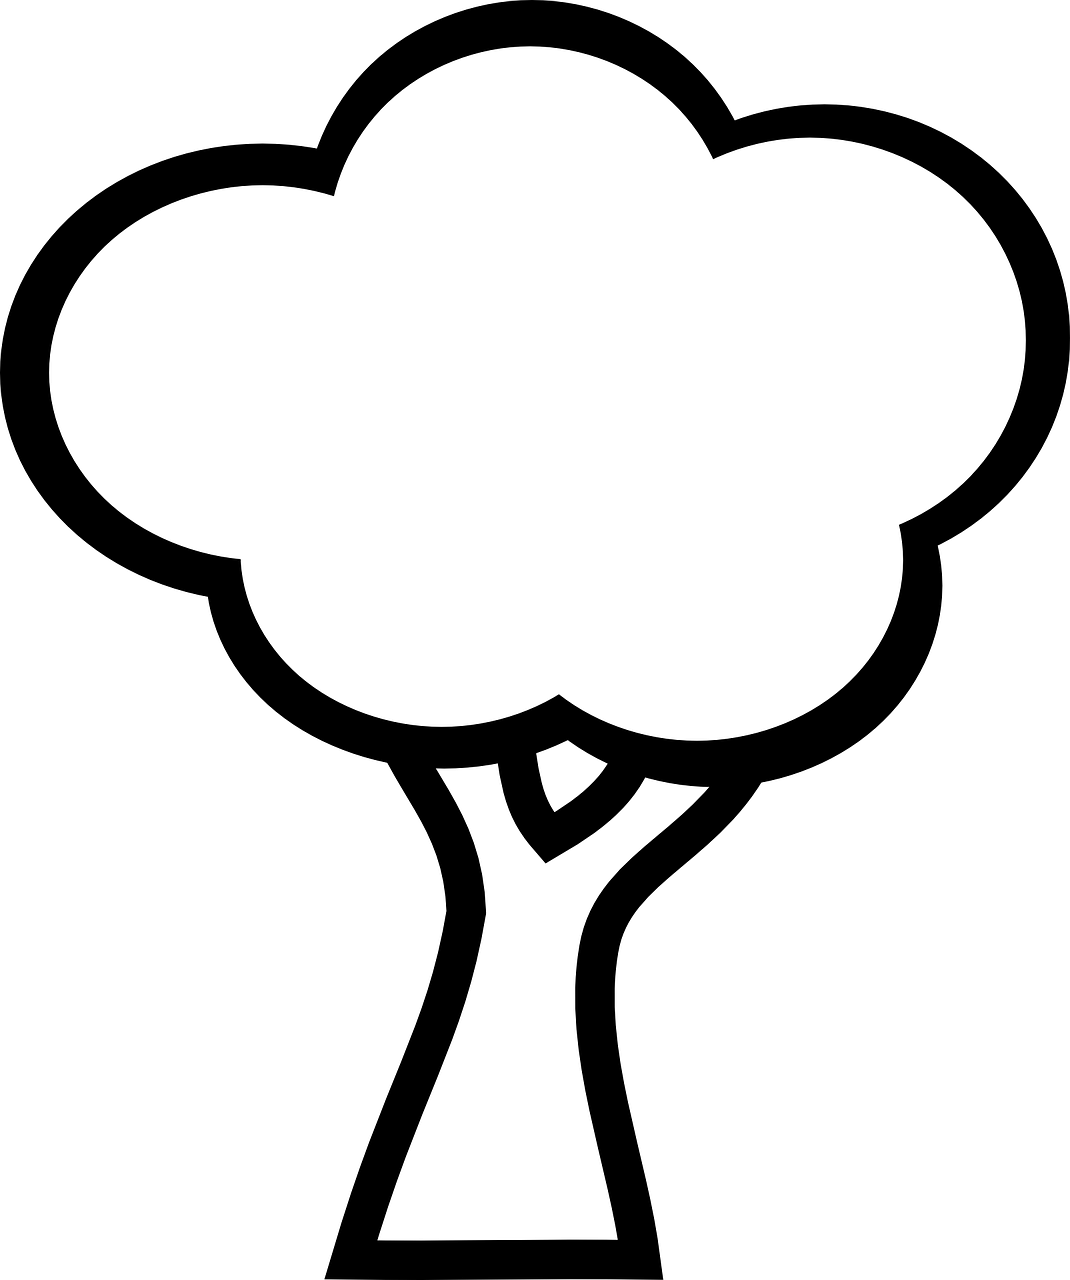 tree to color free printable tree coloring pages for kids 14 pics how color tree to